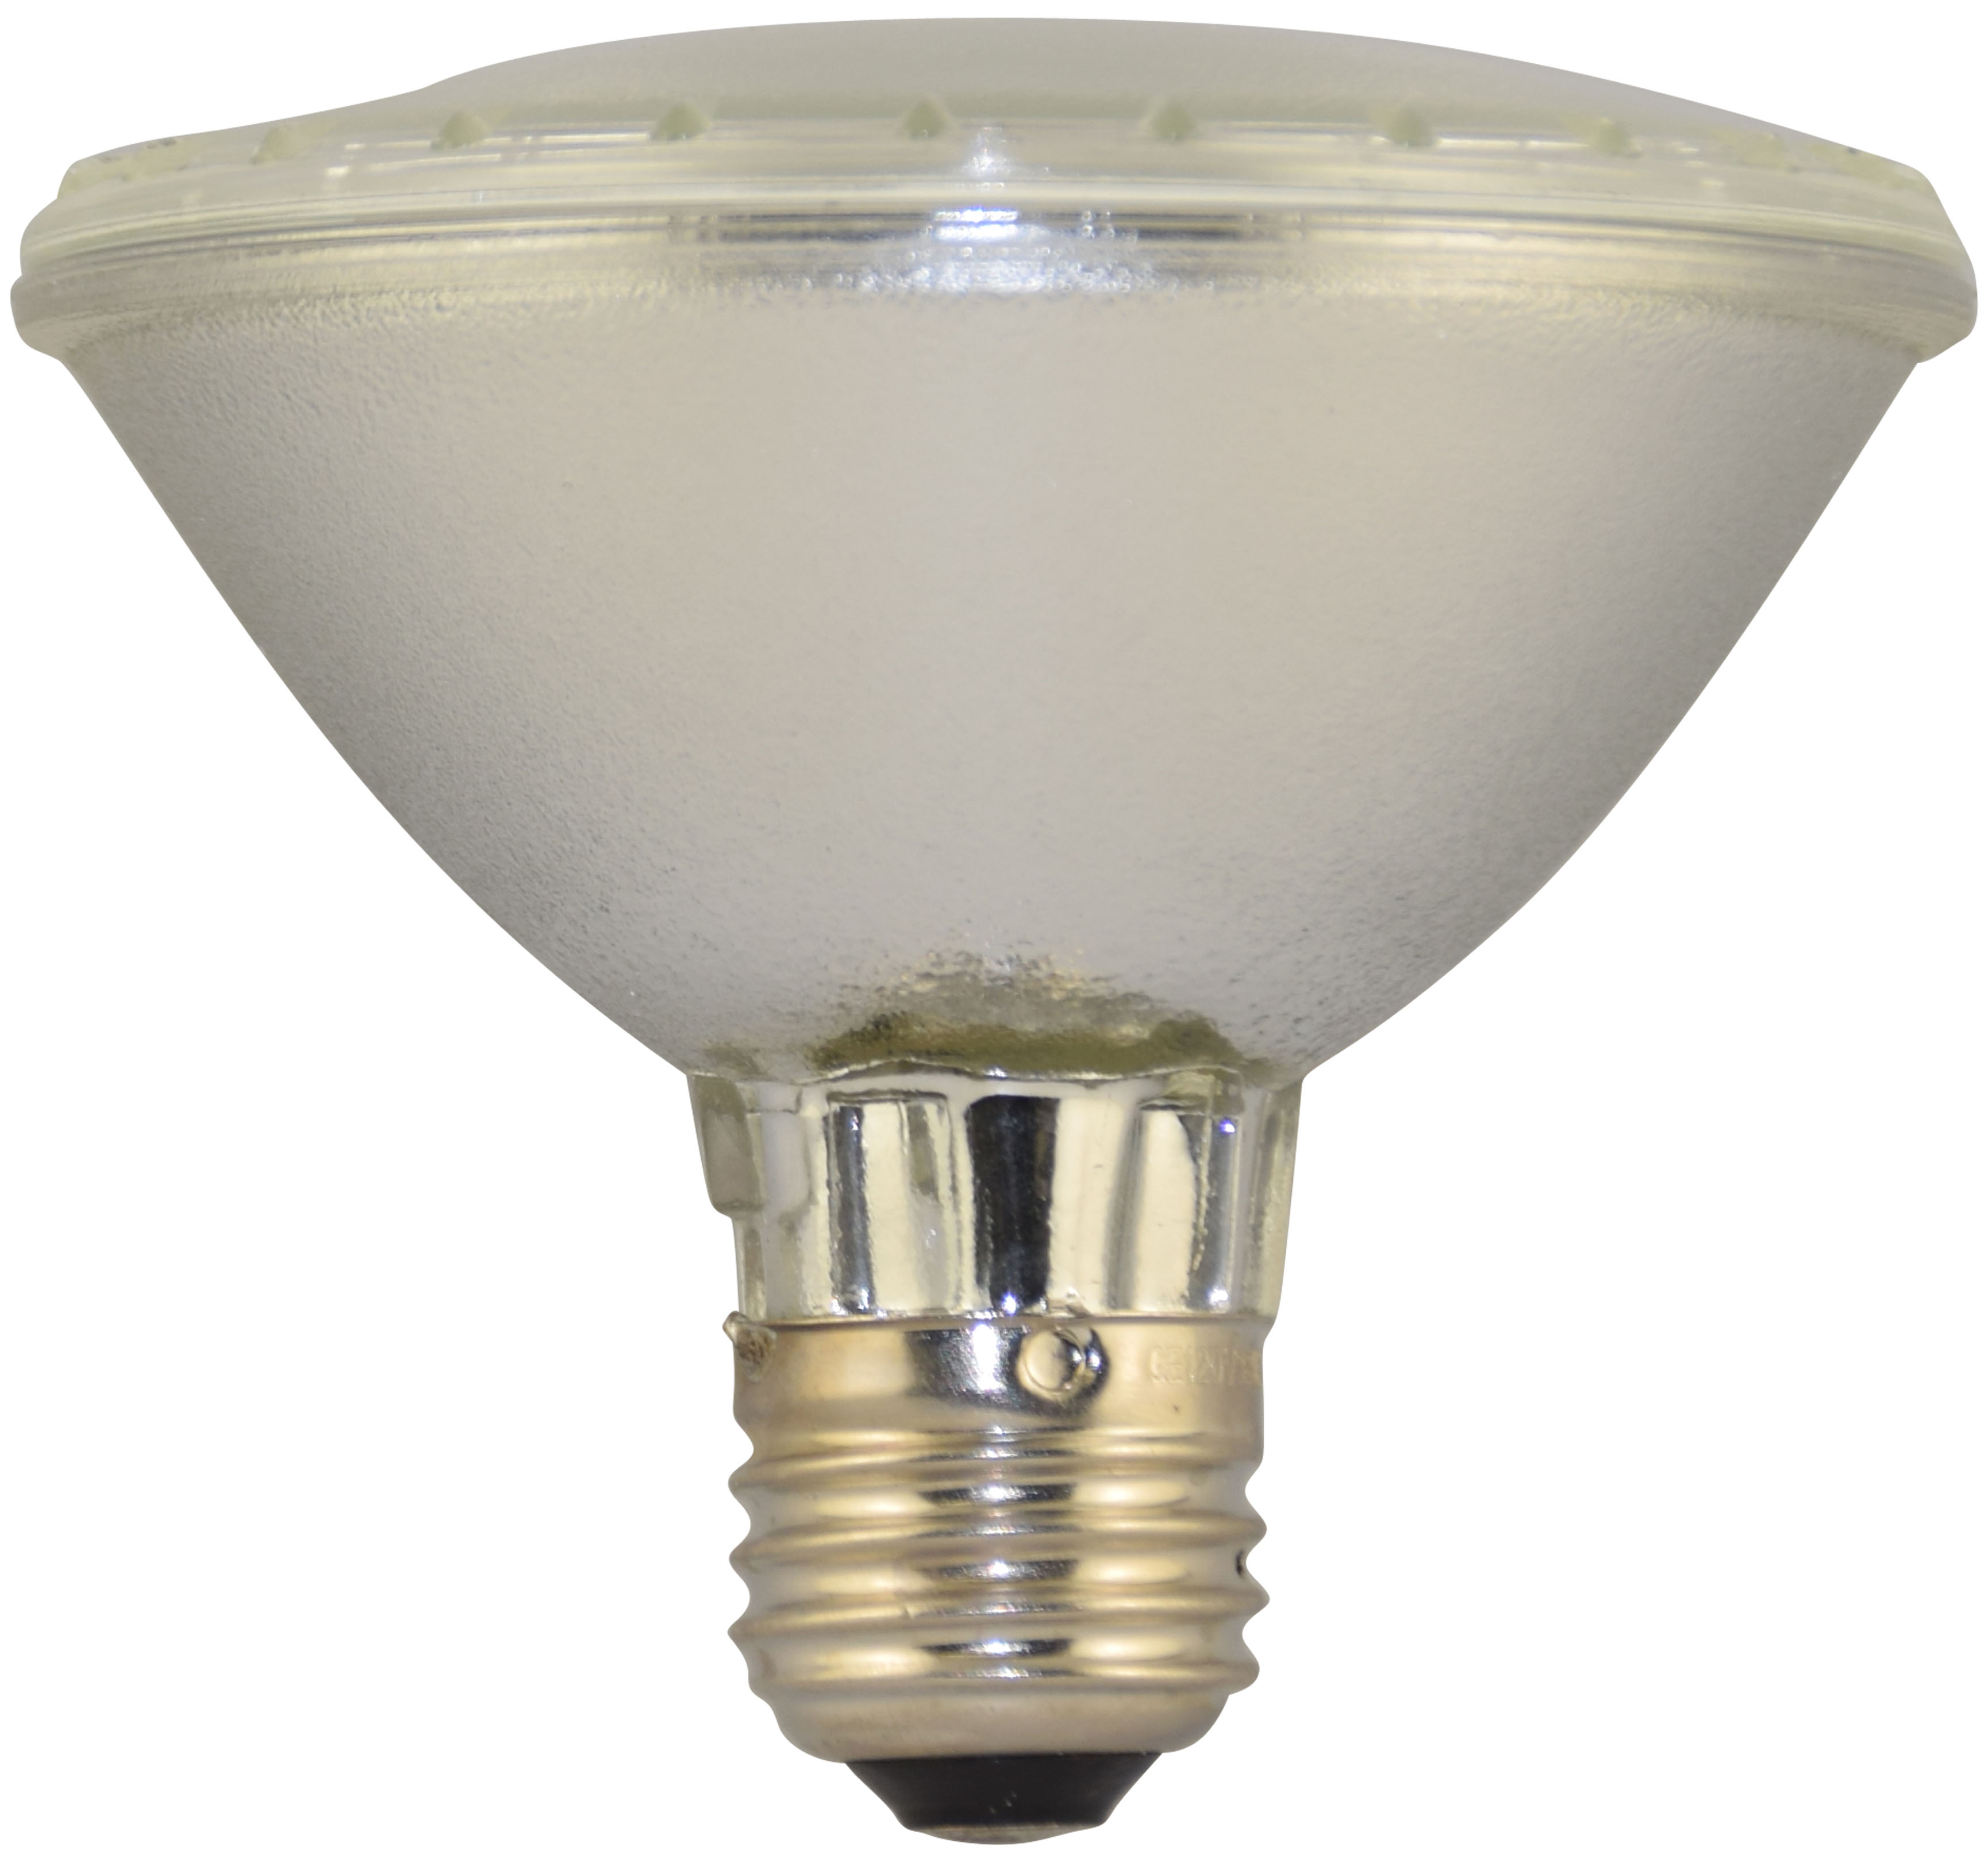 Replacement for OSRAM SYLVANIA 14354 replacement light bu...